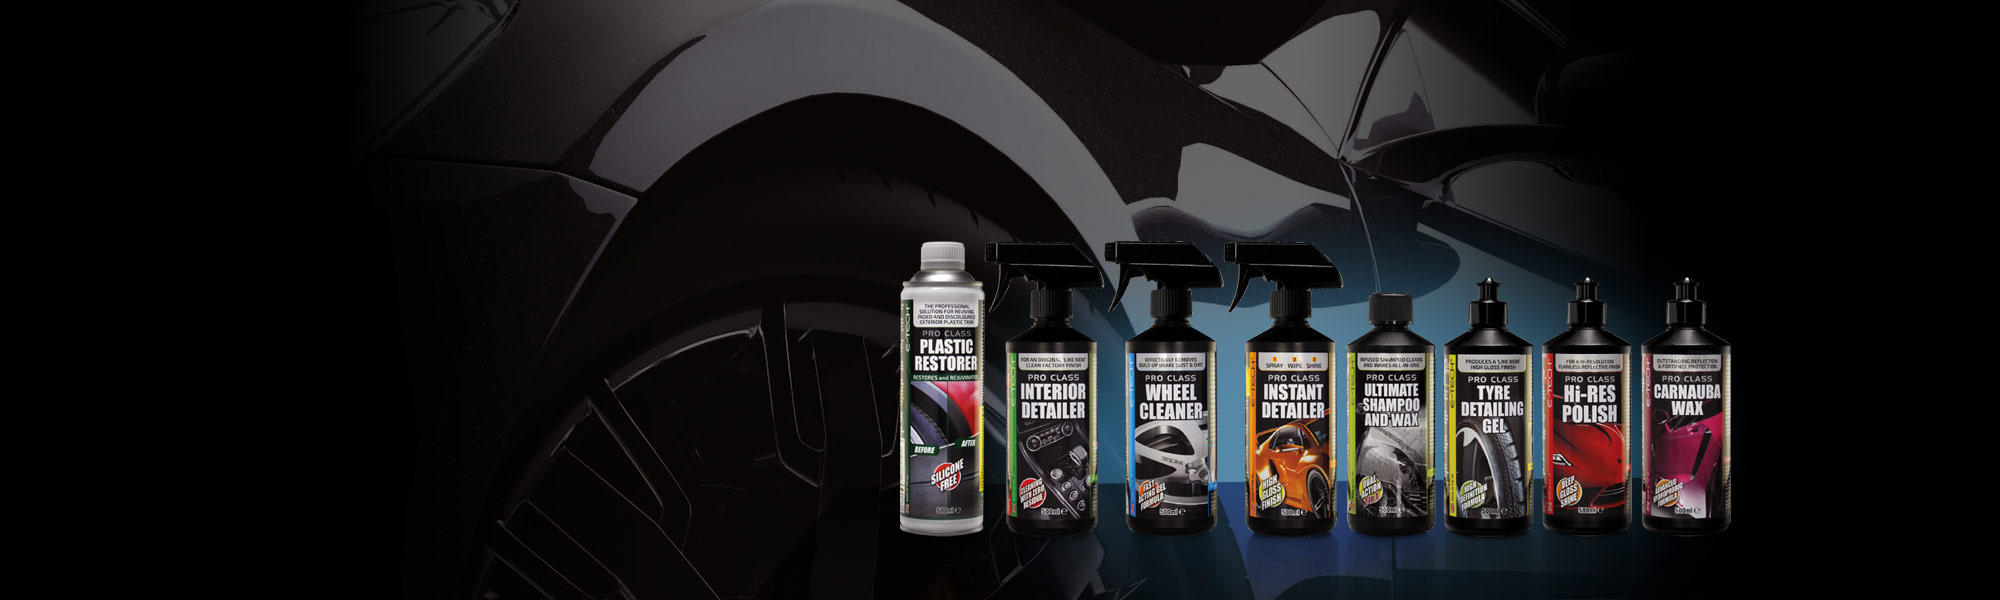 E-TECH Pro Class Detailing and Valeting